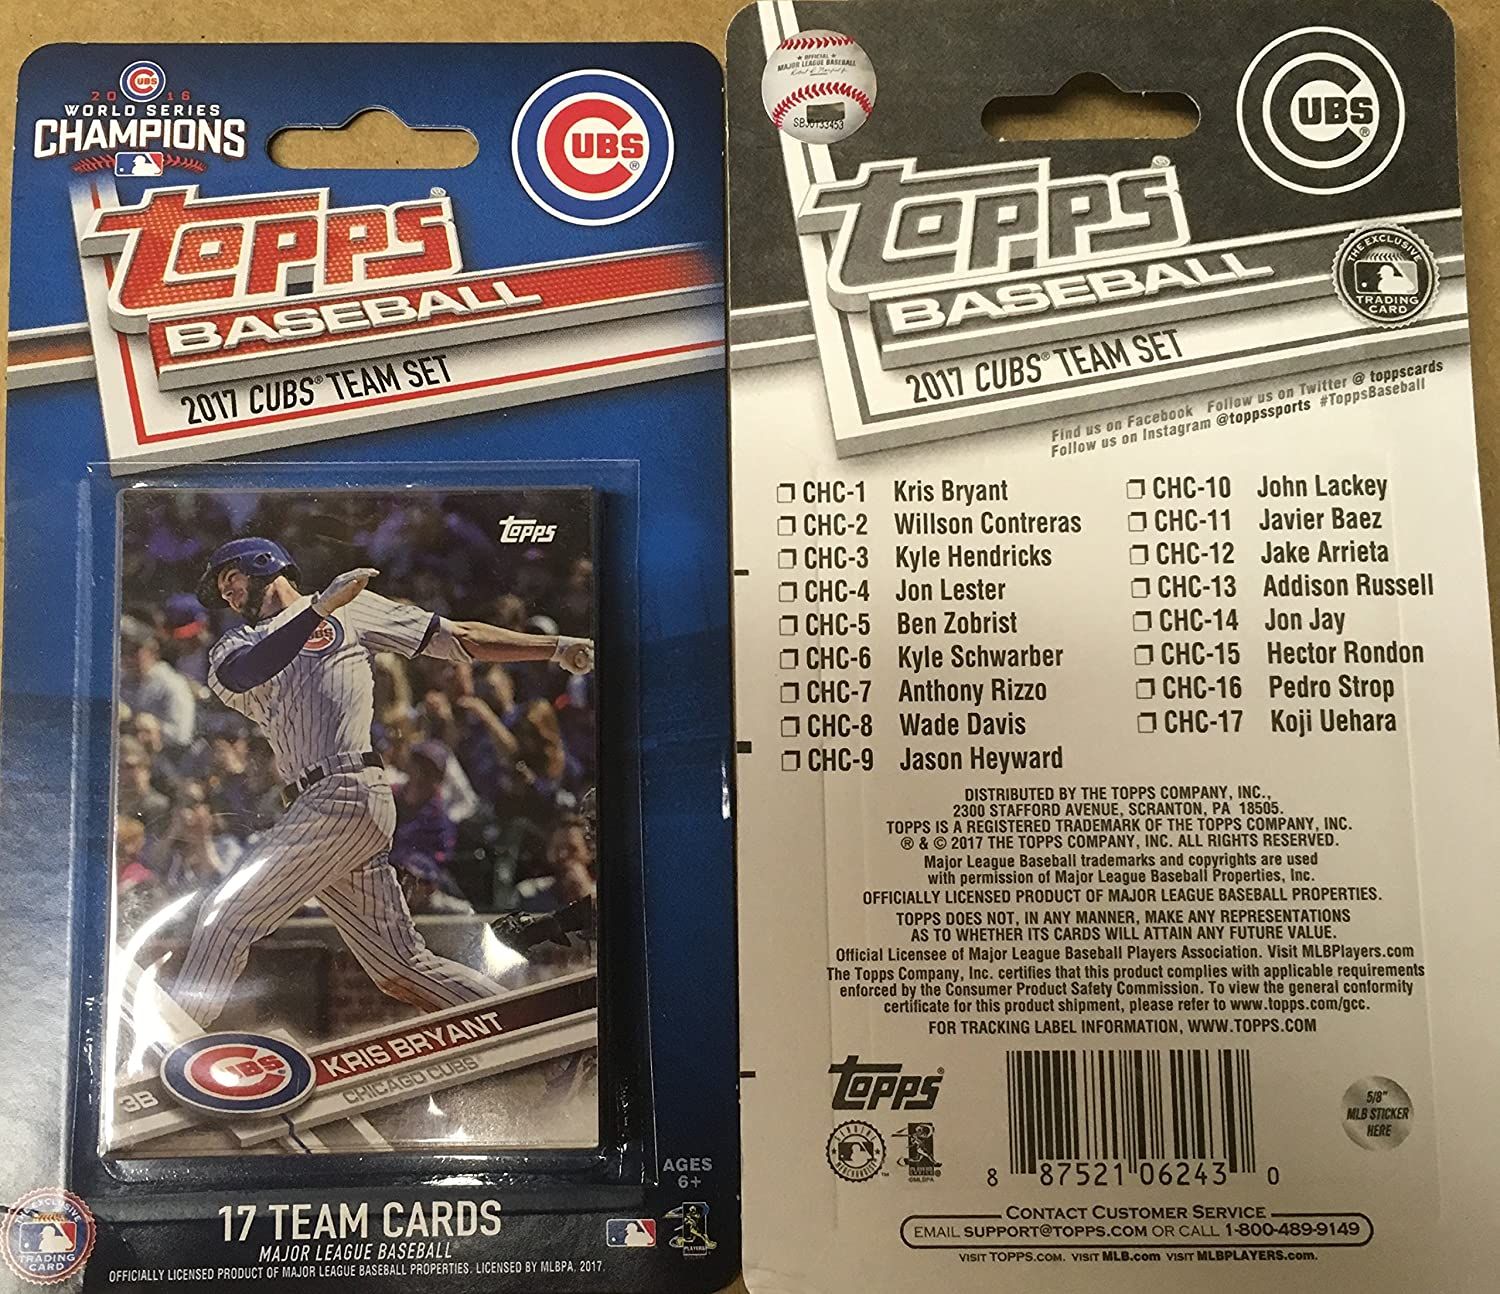 2017 Topps CHICAGO CUBS Factory Sealed Team 17 Card Set 2016 World Series Champions Anthony Rizzo Jake Arrieta John Lester Kyle Hendricks Kris Bryant at ...